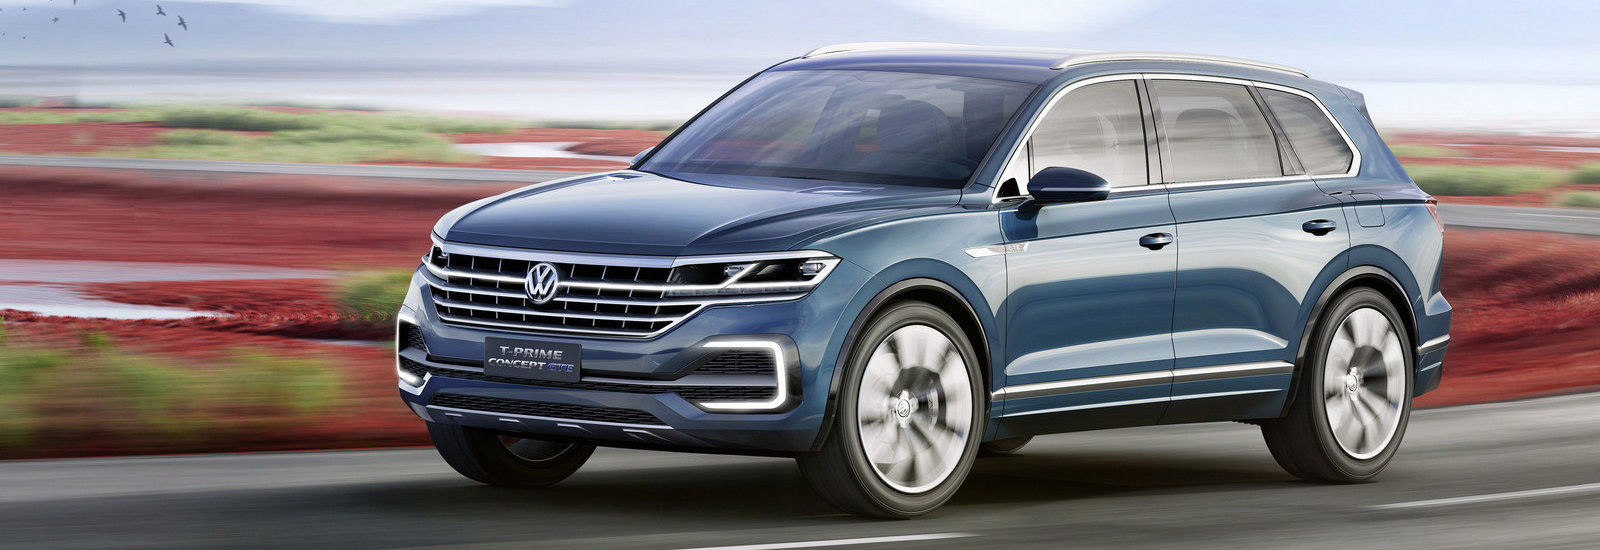 2017 vw touareg 4x4 suv price specs release date carwow. Black Bedroom Furniture Sets. Home Design Ideas